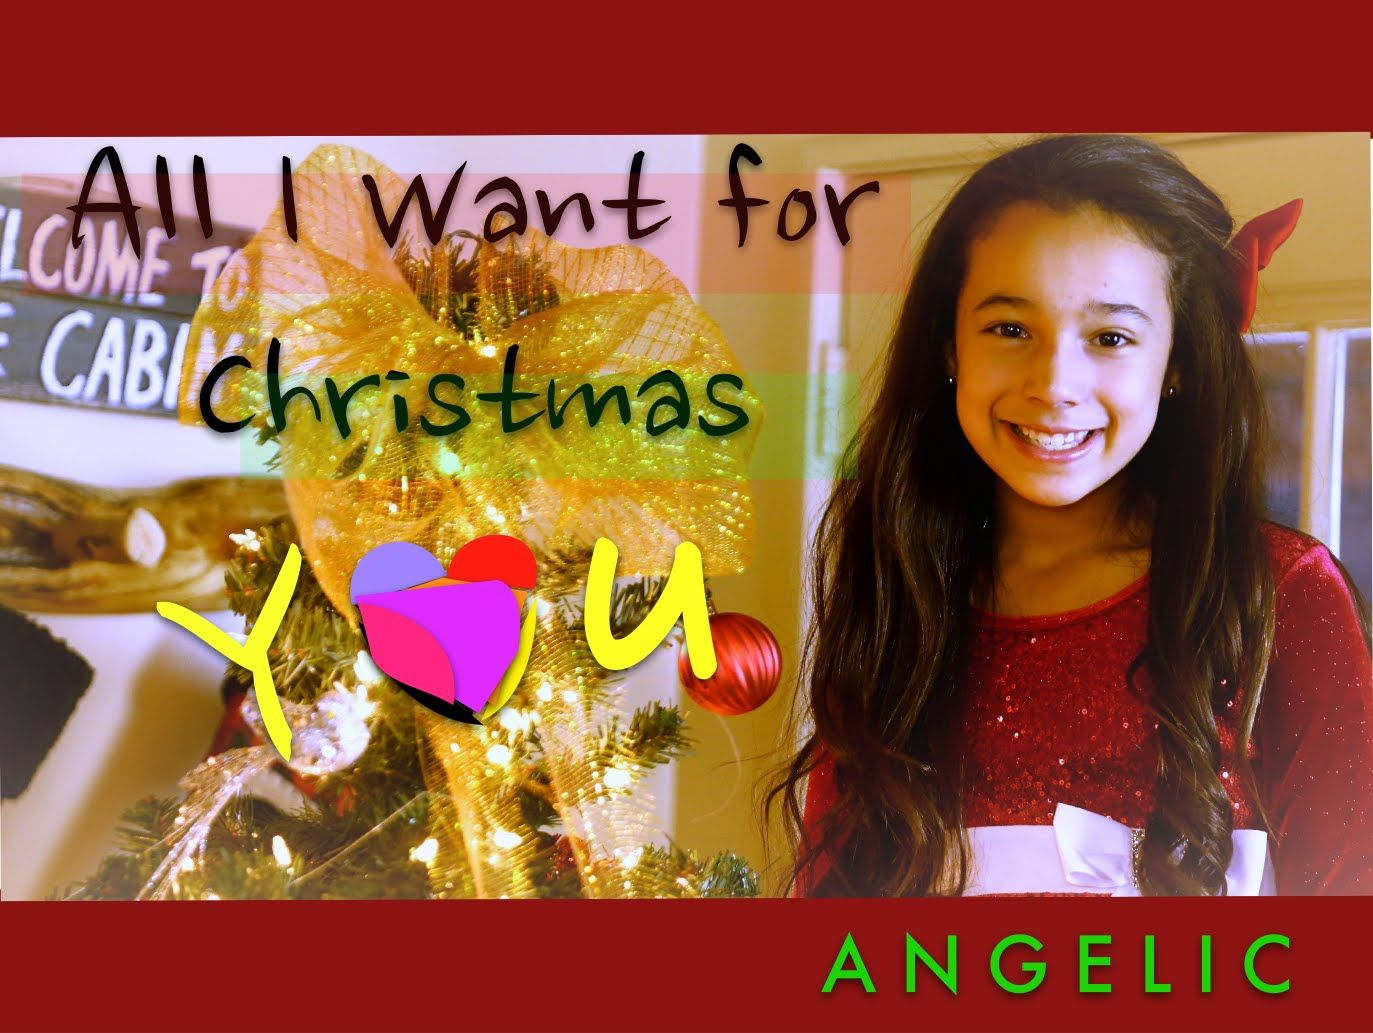 All I Want For Christmas Is You Mariah Carey Angelic Cover 10 Years Old